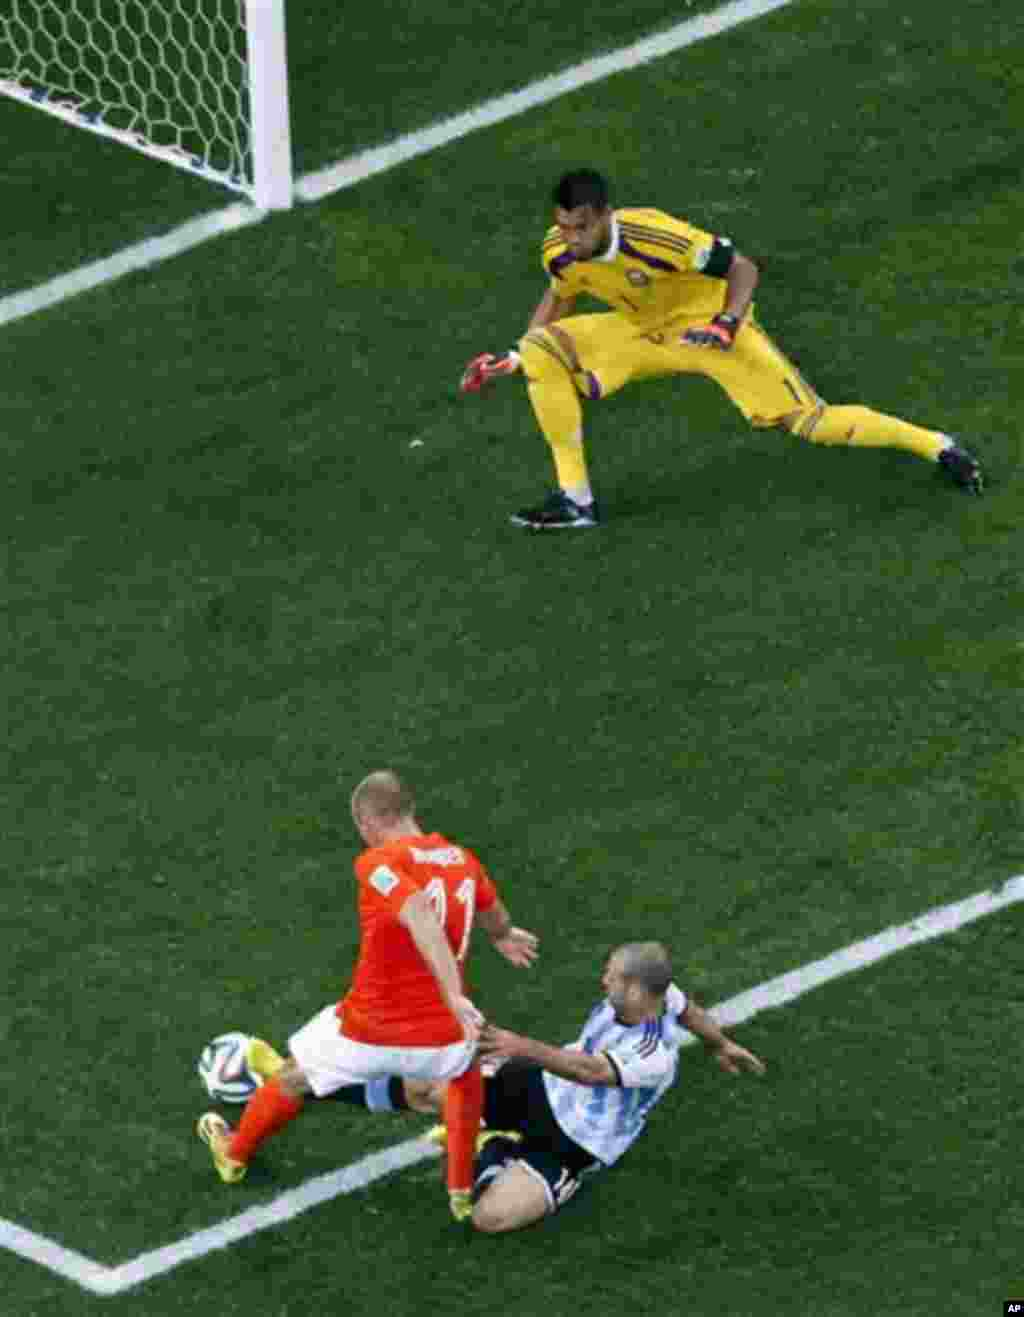 Netherlands' Arjen Robben (11) is tackled by Argentina's Javier Mascherano during the World Cup semifinal soccer match between the Netherlands and Argentina at the Itaquerao Stadium in Sao Paulo, Brazil, Wednesday, July 9, 2014. Argentina's goalkeeper Ser